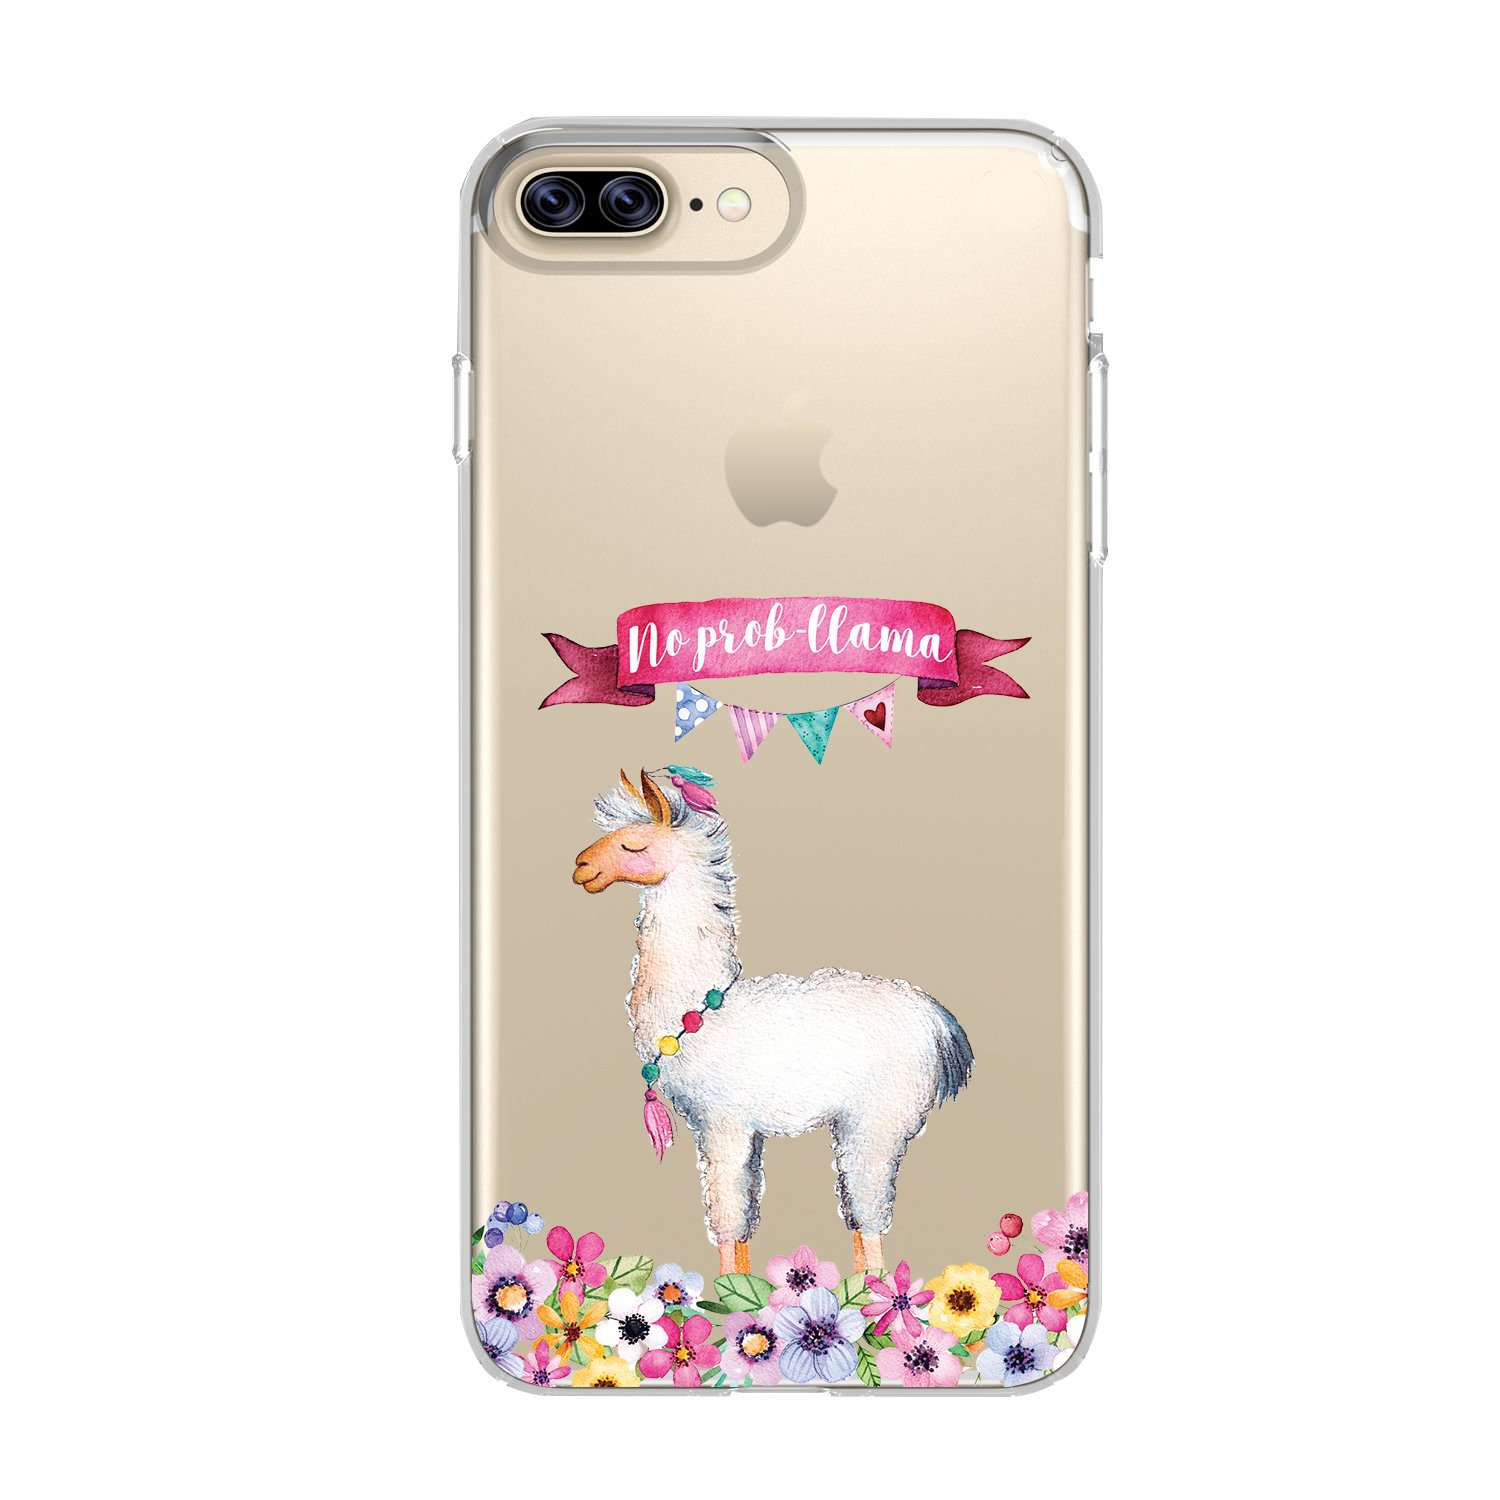 huge discount 4336f b093e No Prob-Llama Phone Case - Samsung Galaxy S10